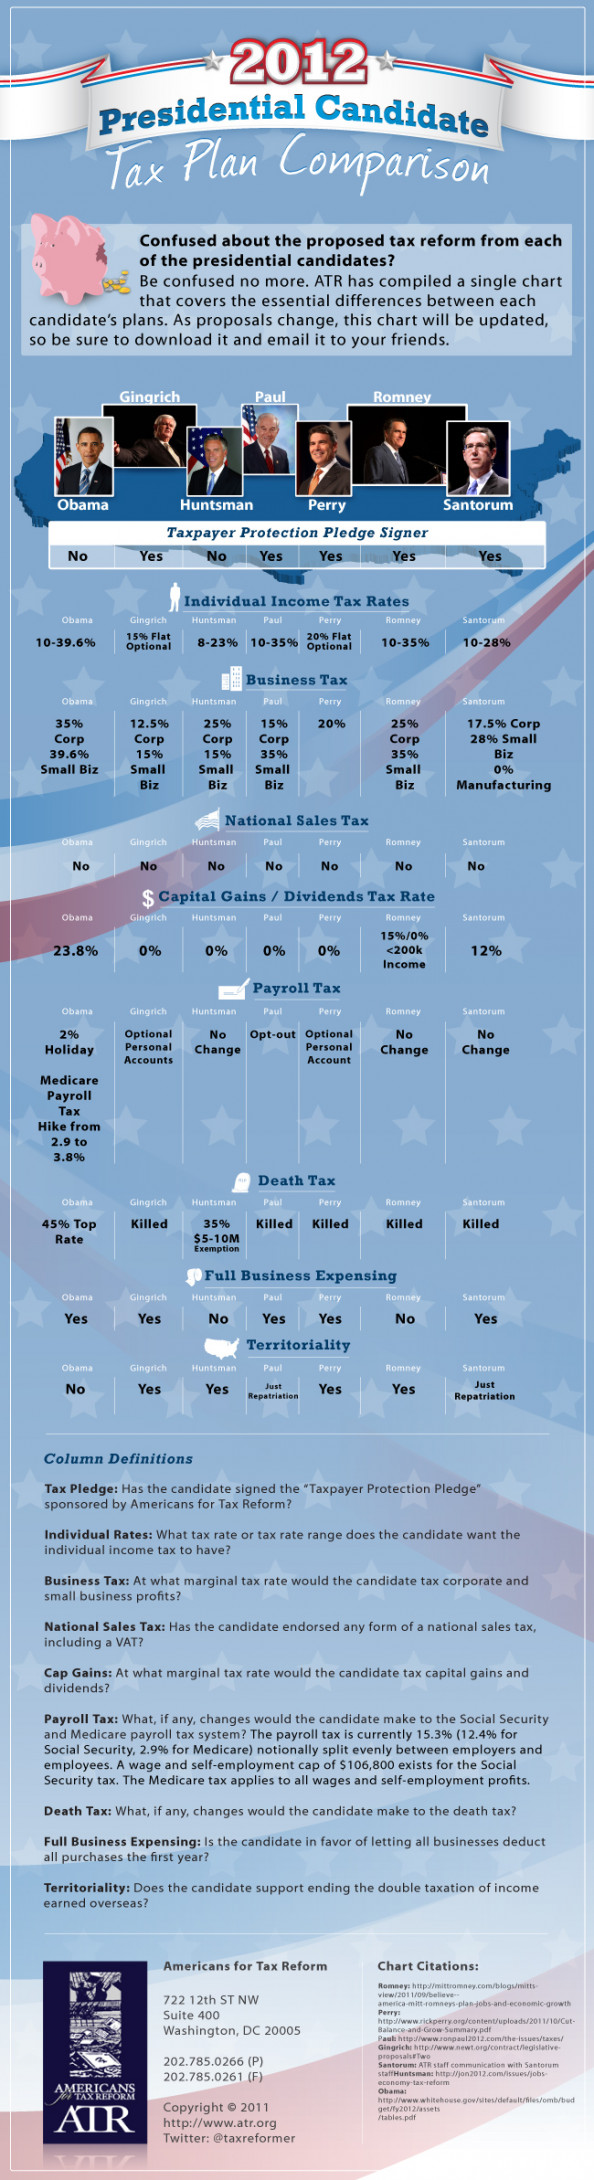 Tax Plans of the Presidential Candidates Infographic